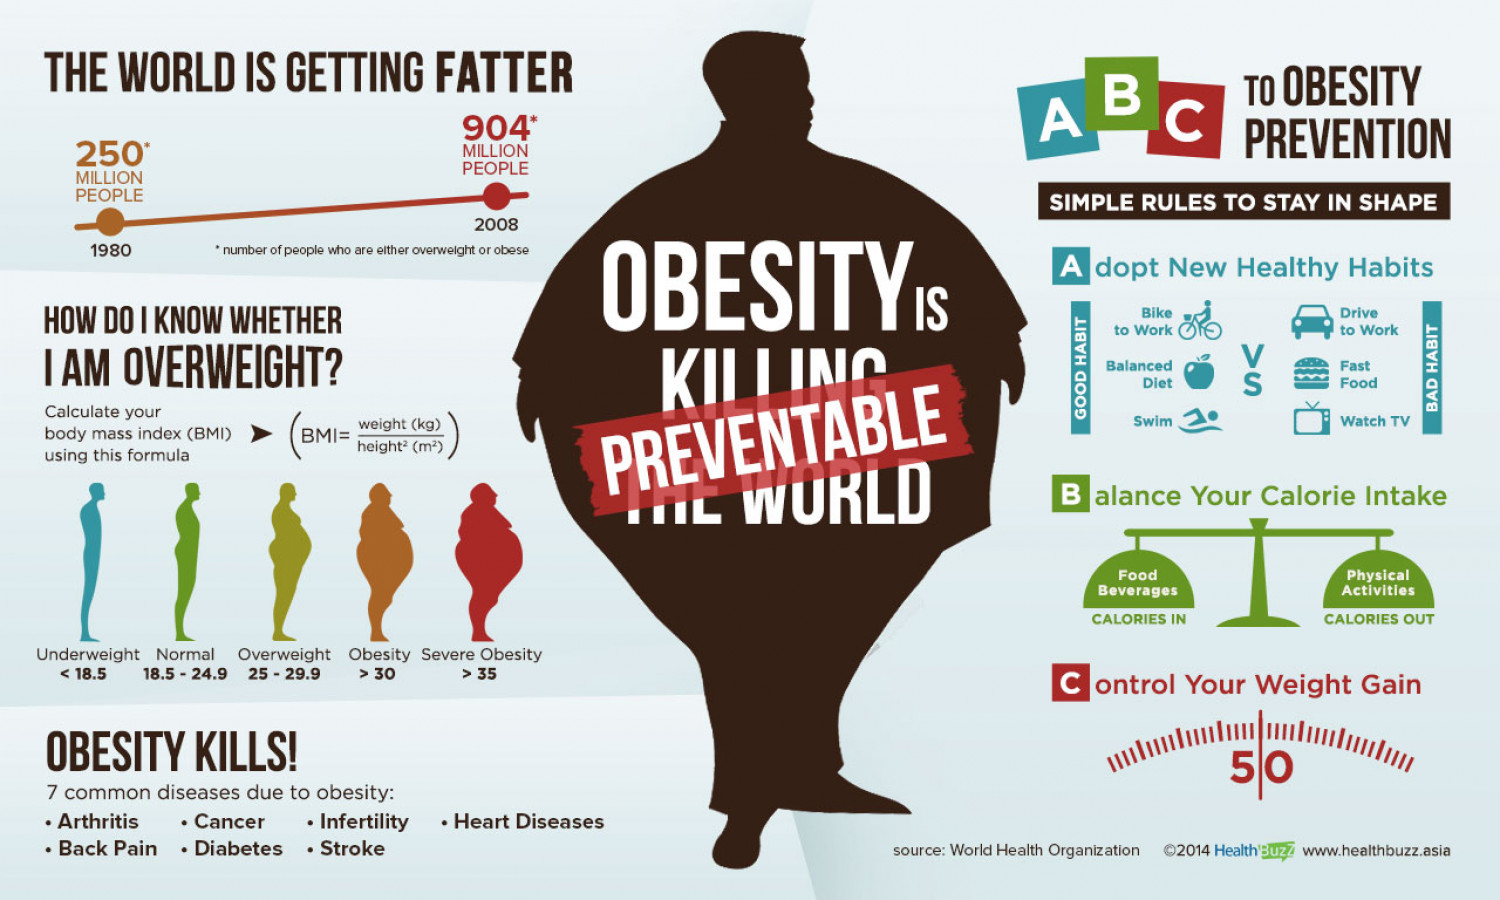 ABC to Obesity Prevention | Visual.ly A Common Man Poster